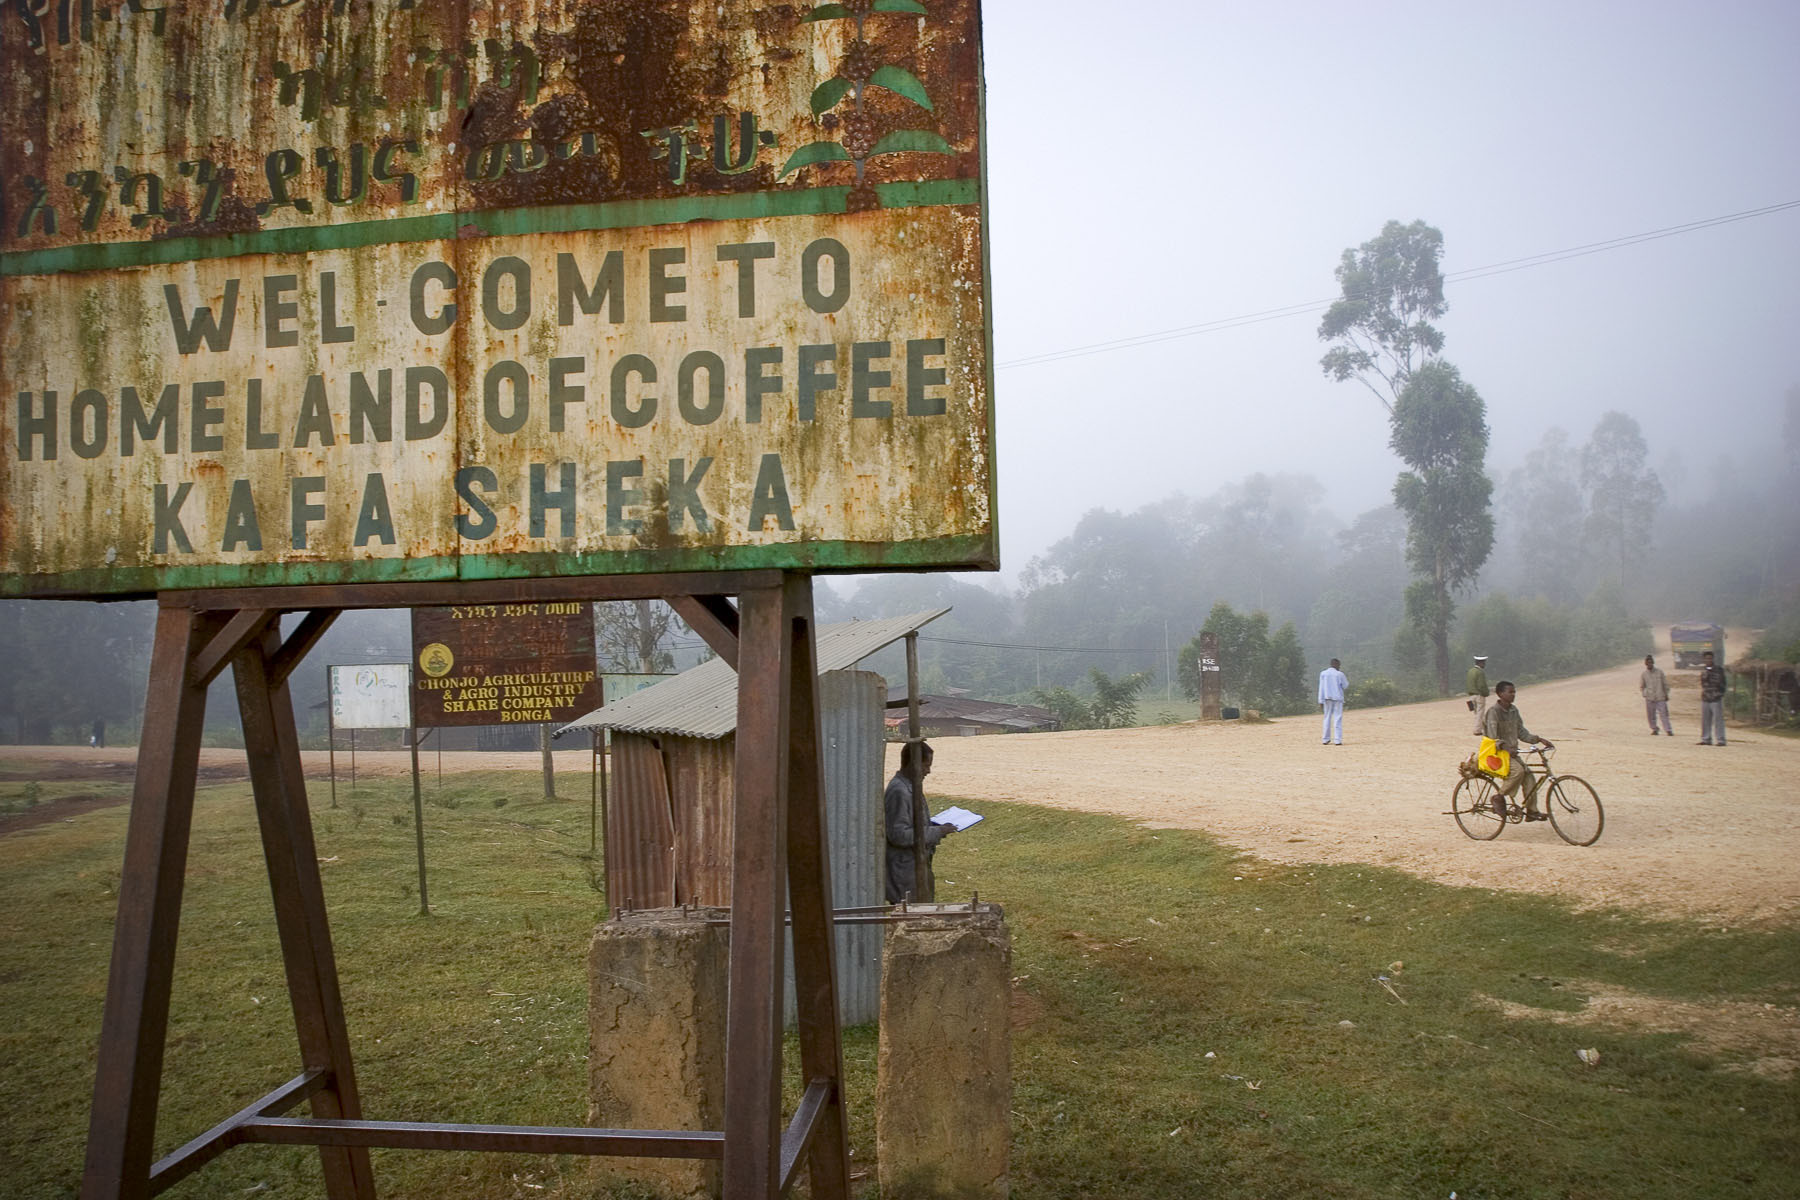 Entry to the city of Bonga, in the region where coffee originates in November 2004